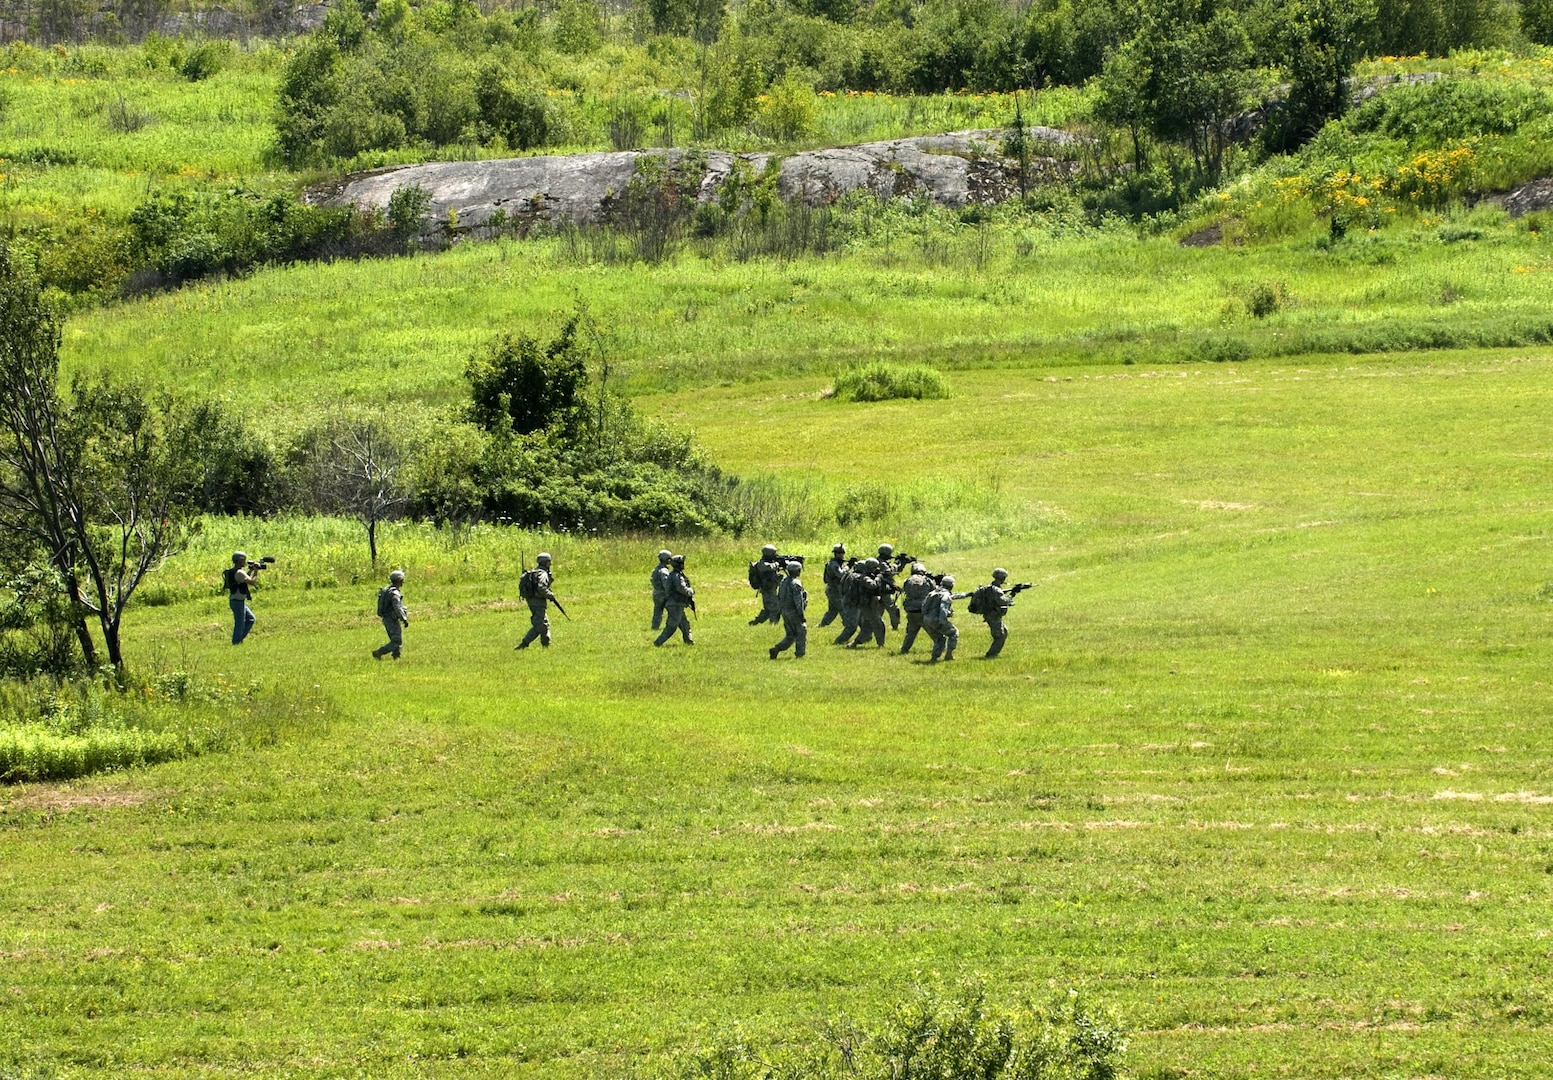 New York Army National Guard Soldiers assigned to Company B 2nd Battalion 108th Infantry move onto the objective during a platoon live-fire exercise at Fort Drum, New York, on July 16, 2015. The training is part of an Exportable Combat Training Capability (XCTC) exercise, required the coordination of the entire platoon, and provided the unit's Soldiers with an opportunity to improve their combat techniques.